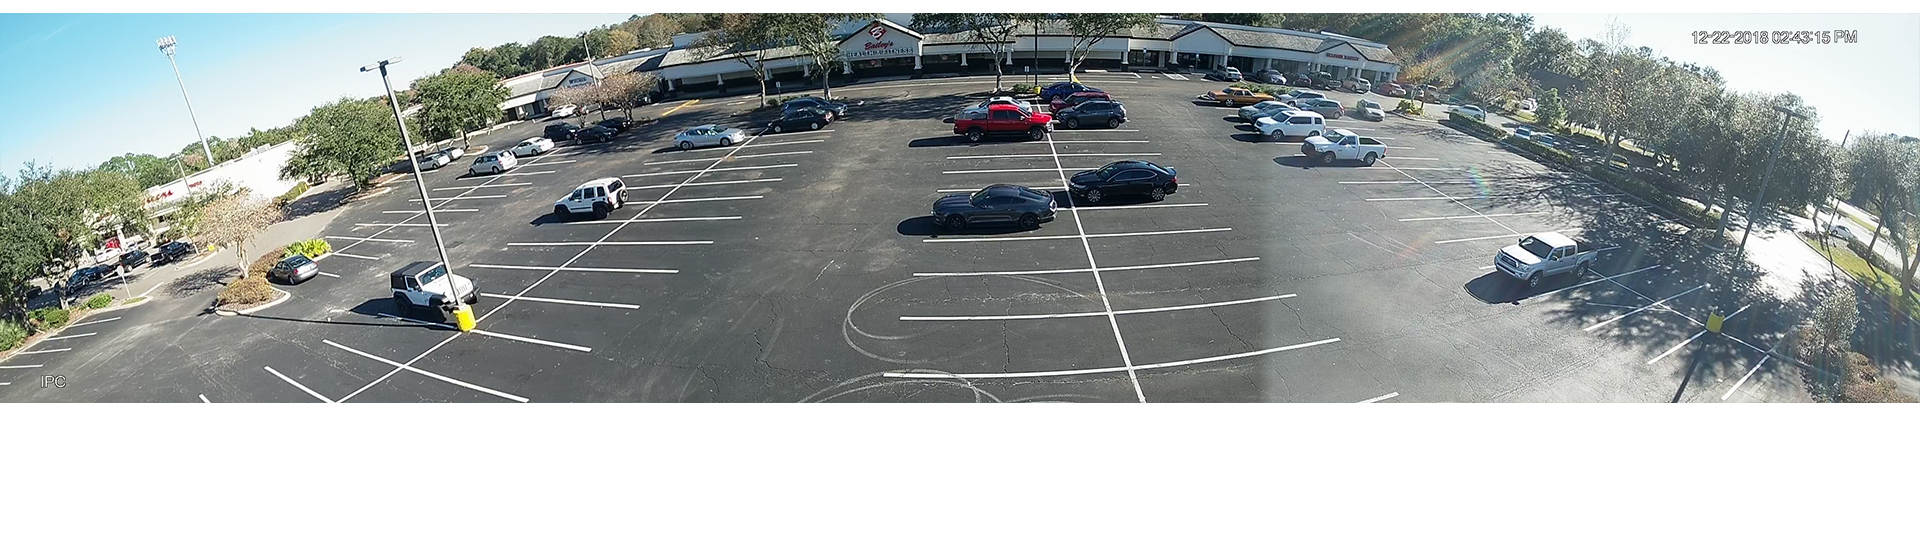 Solar powered surveillance - Parking Lots